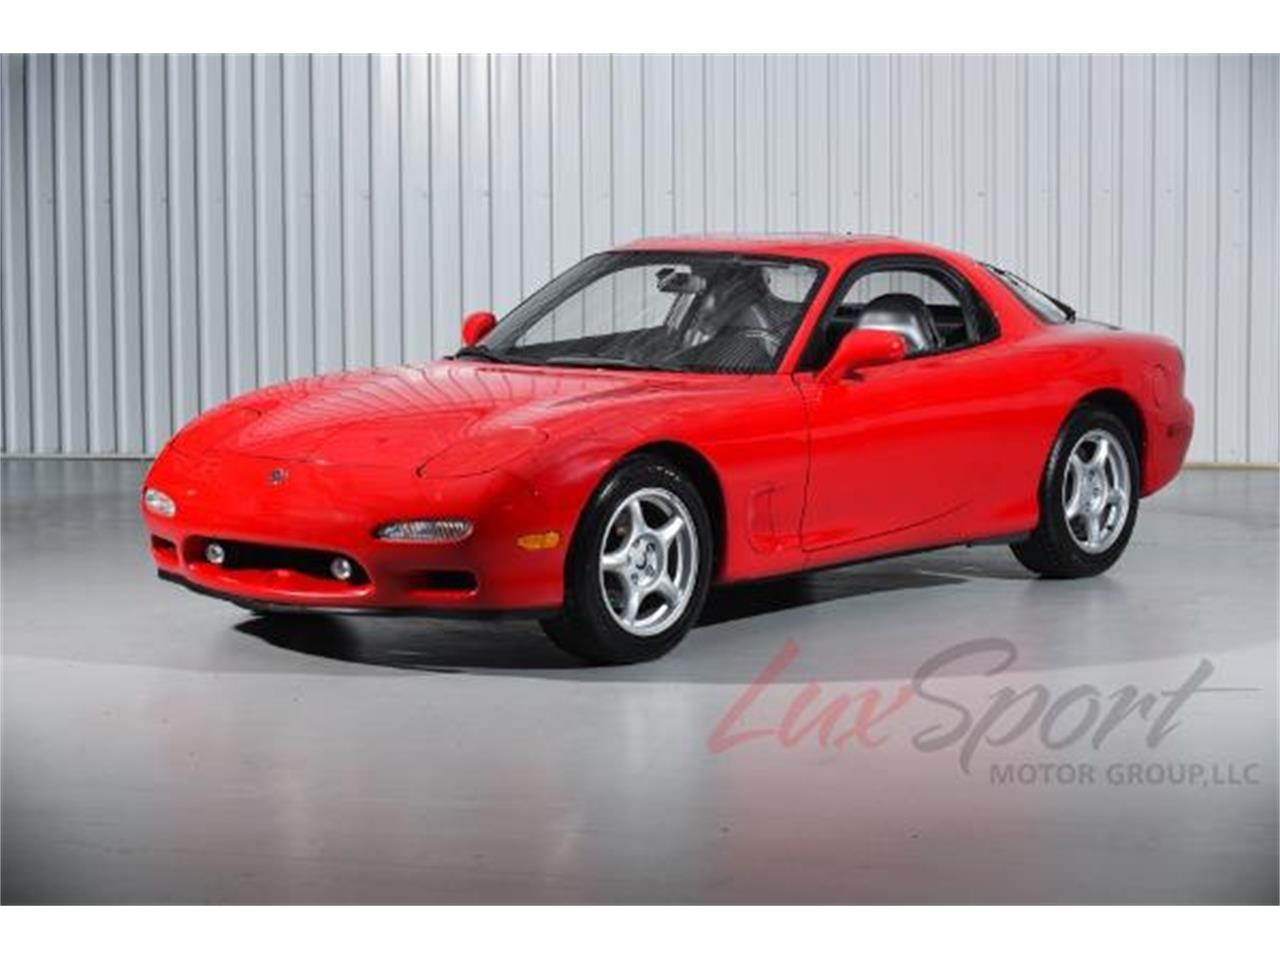 Large Picture of '93 Mazda RX-7 - $34,995.00 Offered by LuxSport Motor Group, LLC - MO02